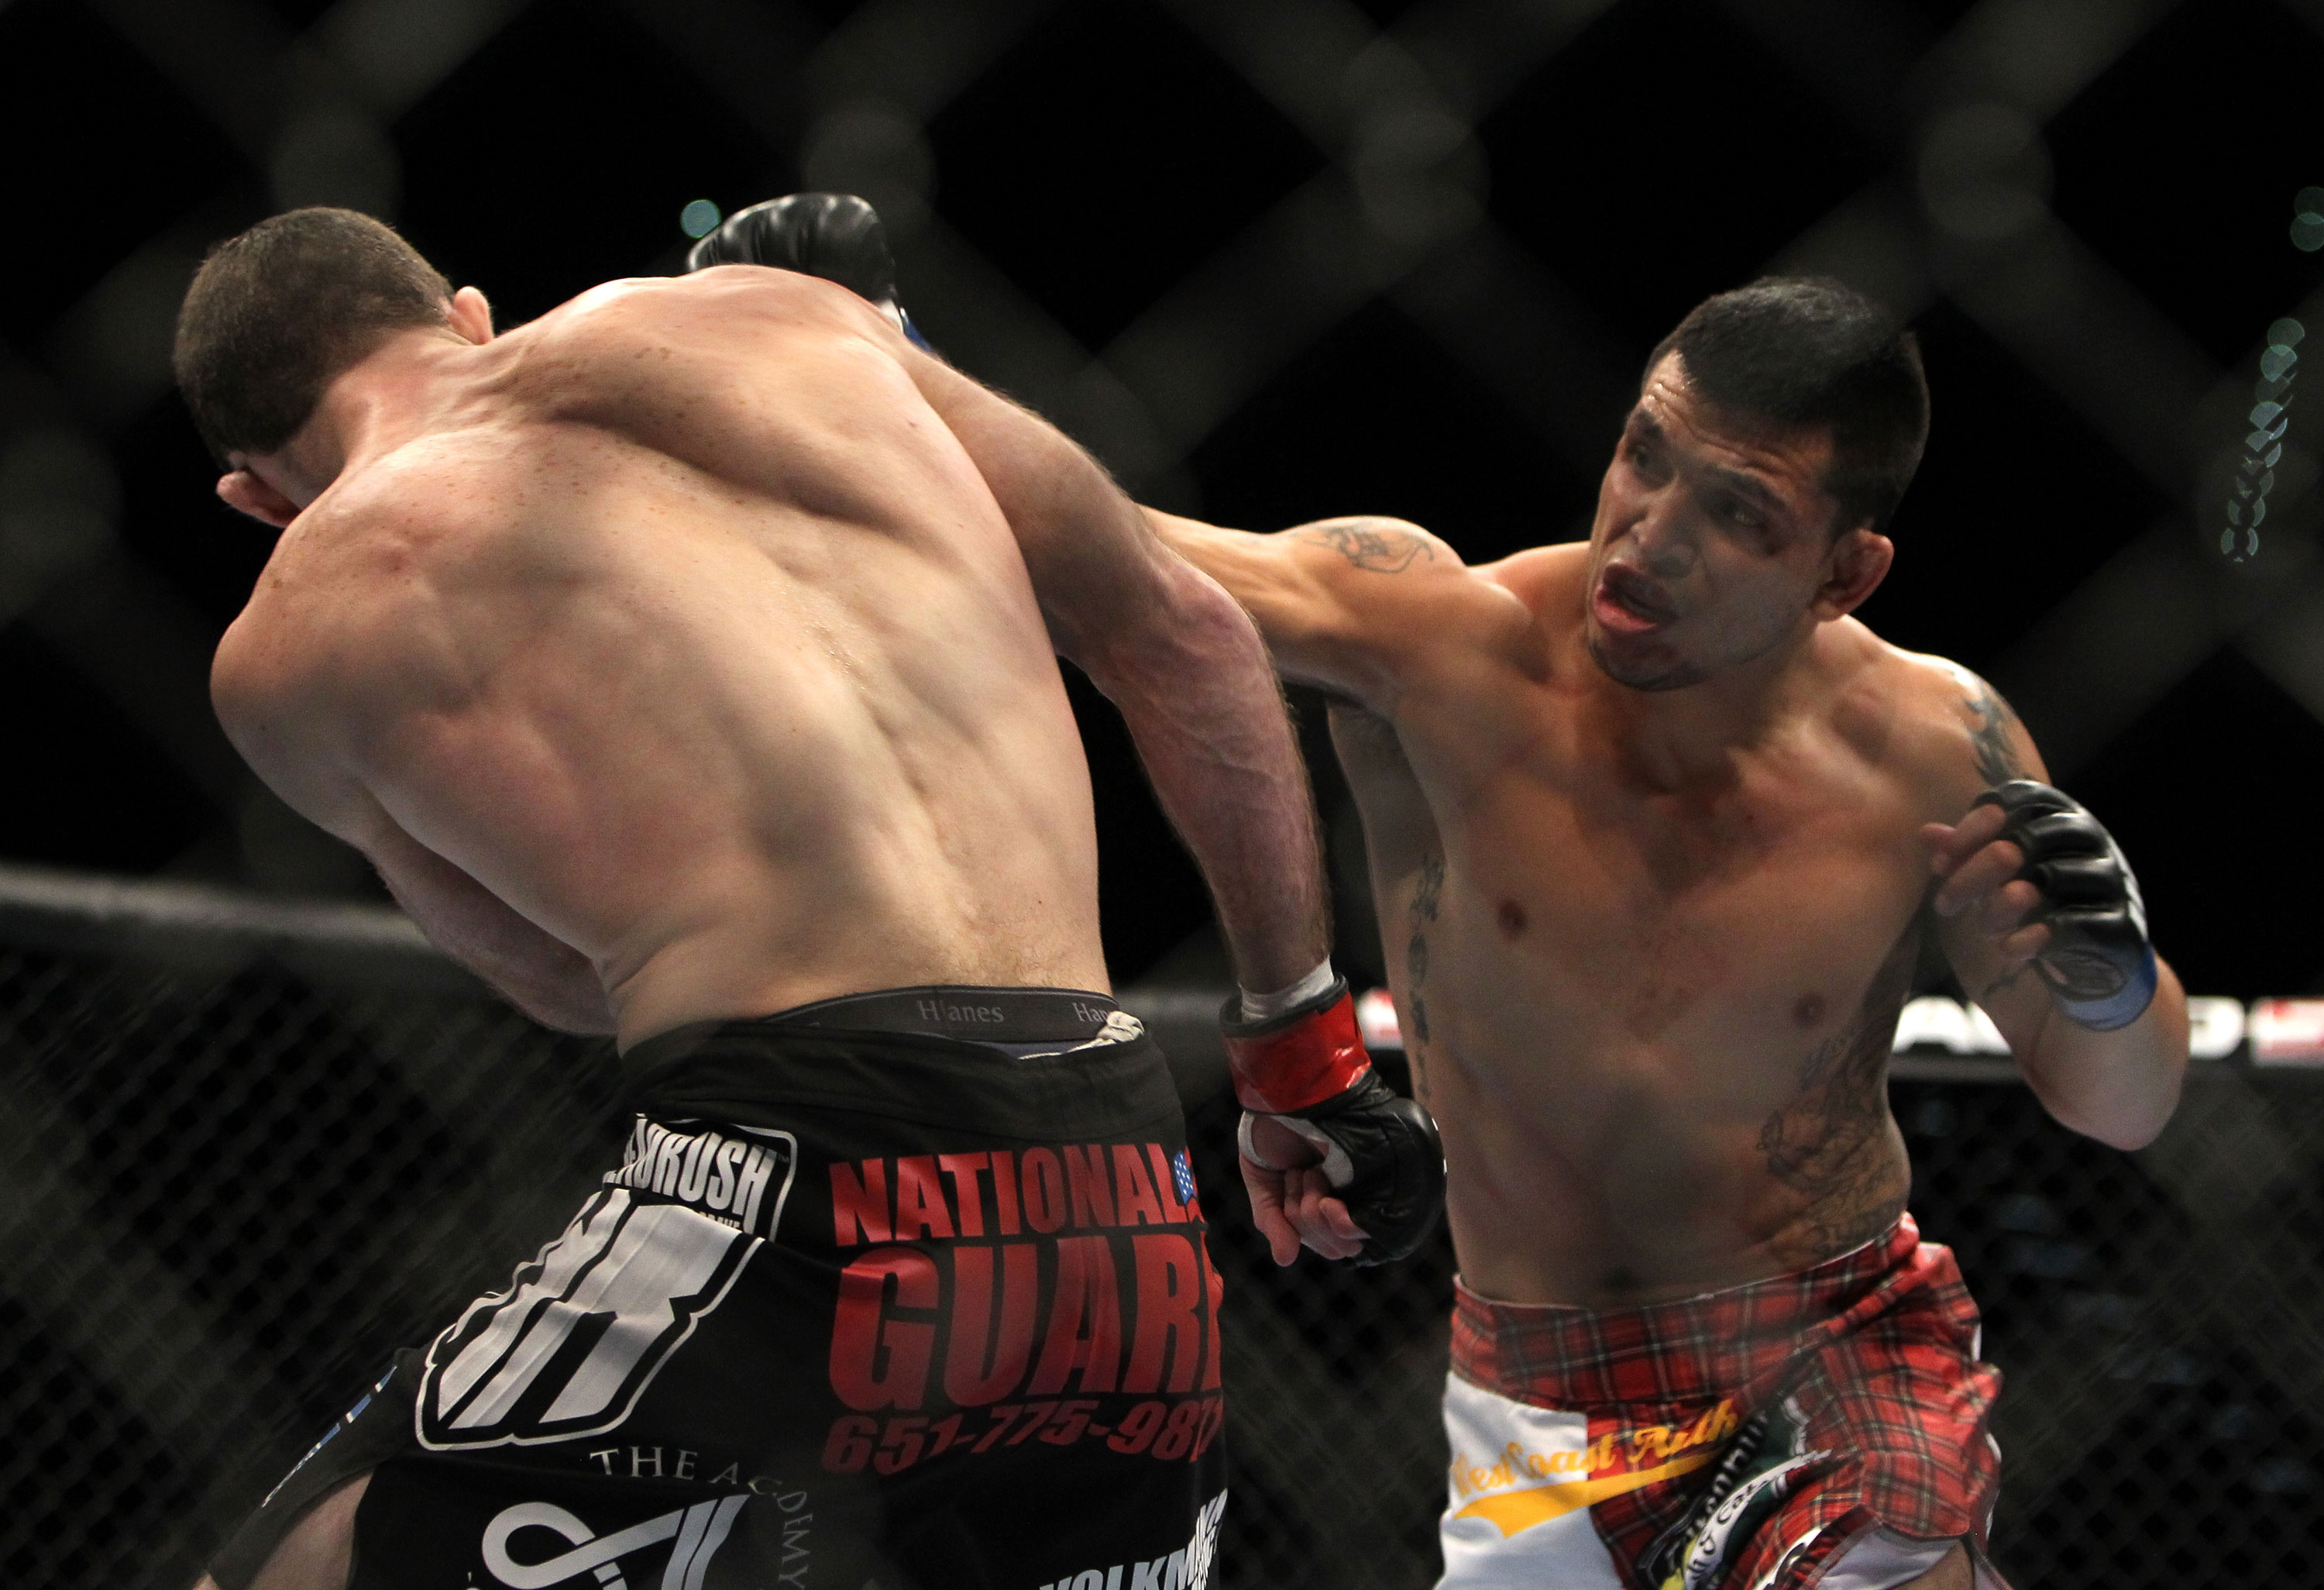 LAS VEGAS, NV - DECEMBER 30:  Efrain Escudero (right) punches Jacob Volkmann during the UFC 141 event at the MGM Grand Garden Arena on December 30, 2011 in Las Vegas, Nevada.  (Photo by Josh Hedges/Zuffa LLC/Zuffa LLC via Getty Images) *** Local Caption *** Efrain Escudero; Jacob Volkmann